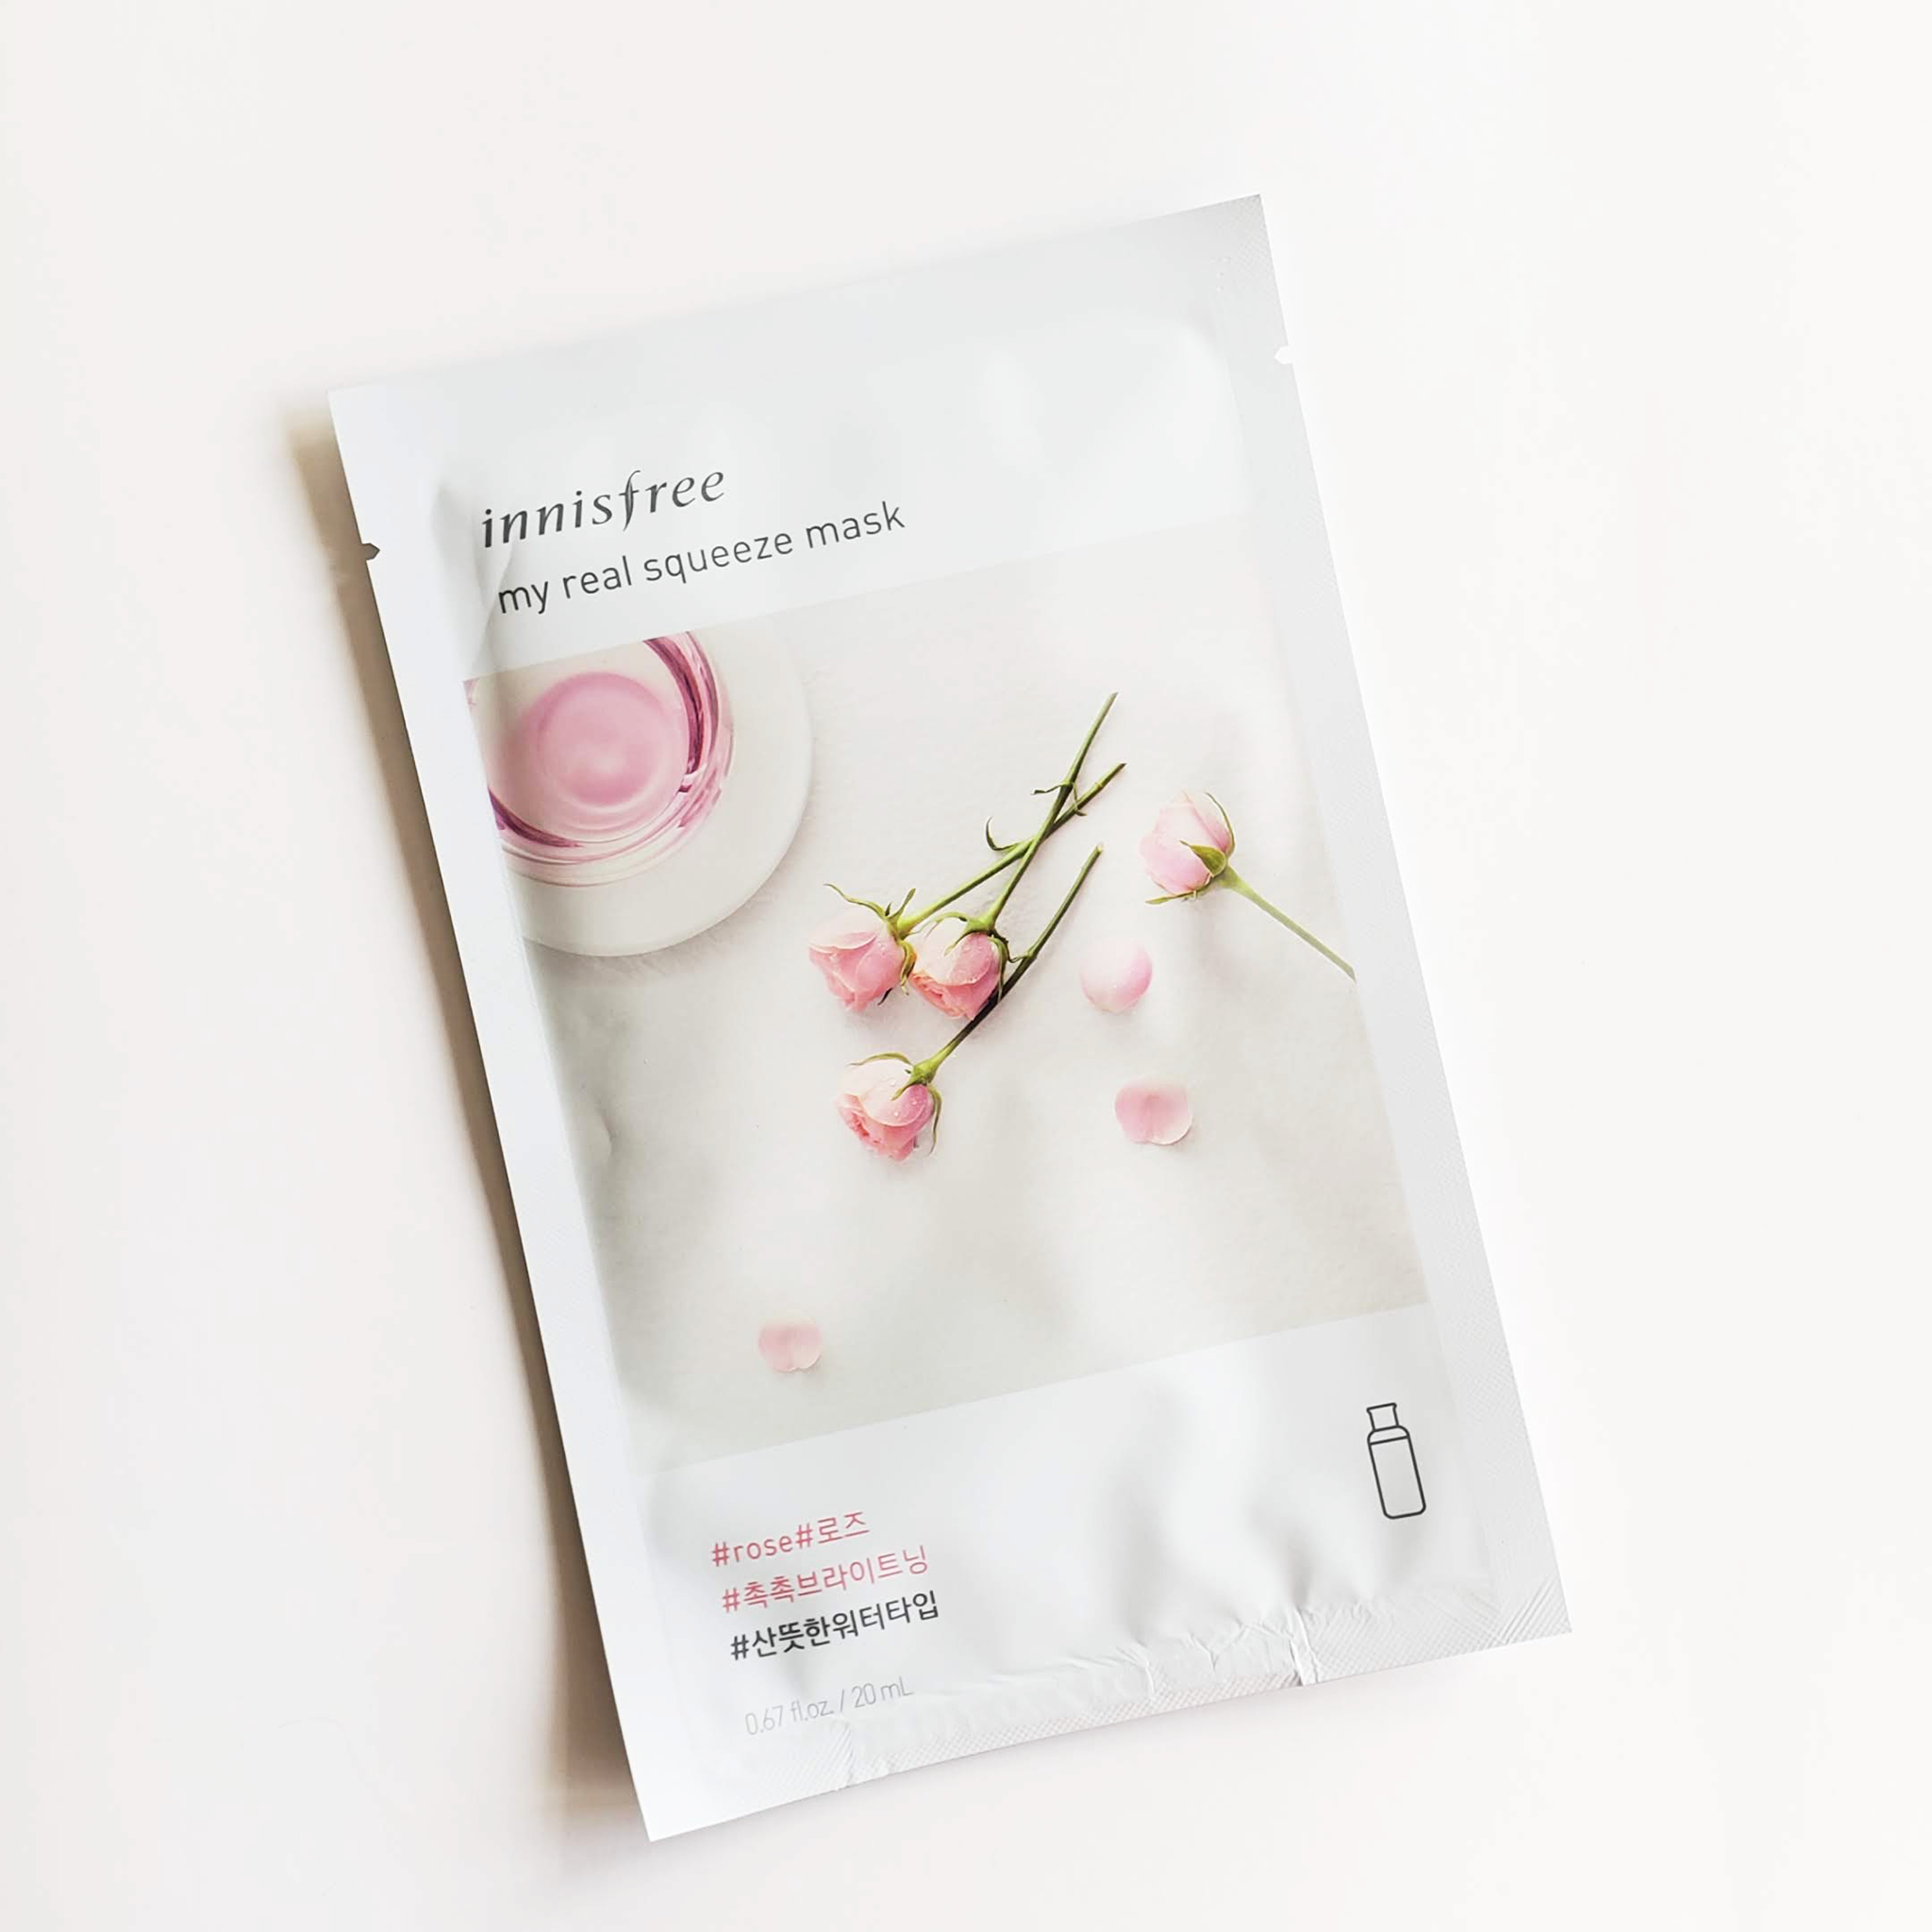 Innisfree My Real Squeeze Mask Rose